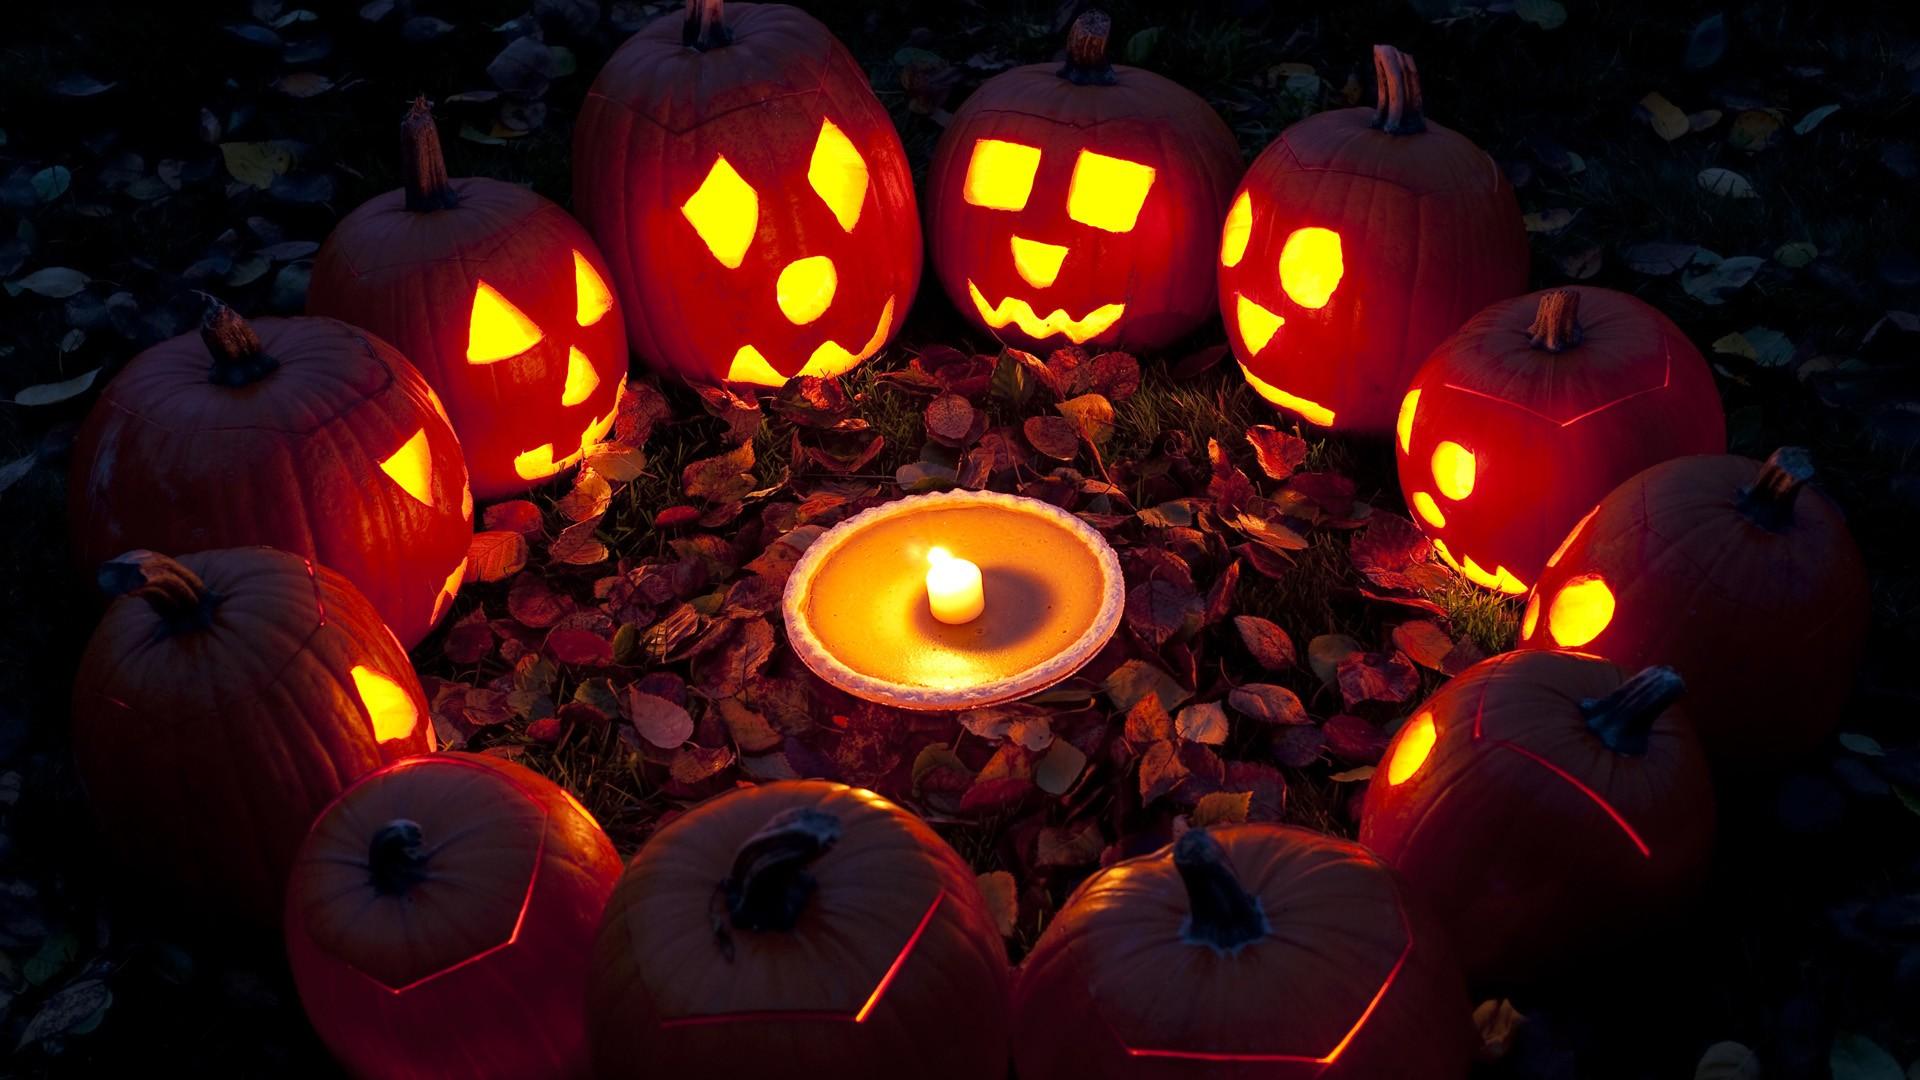 Lanterns Jack O Lantern pumpkins gathering wallpaper | 1920x1080